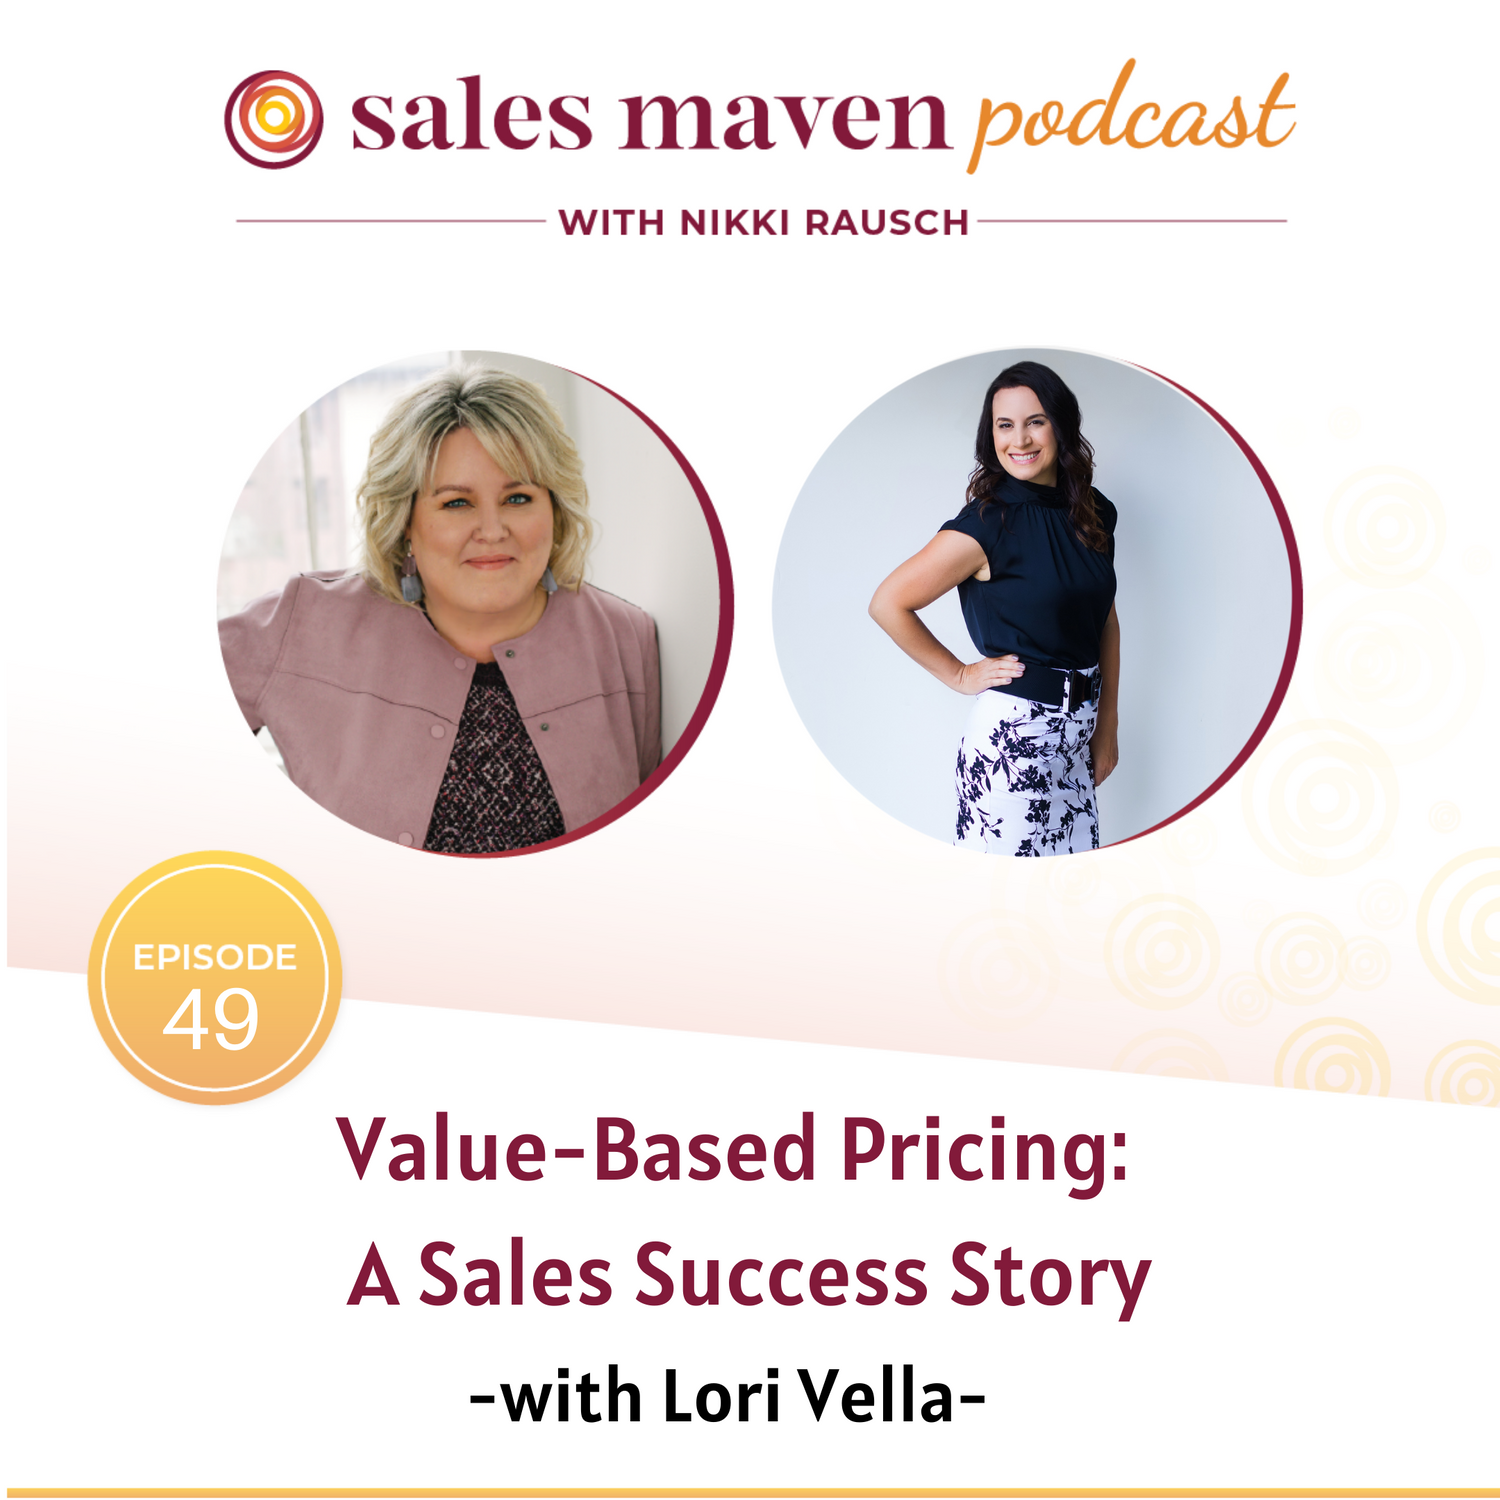 Sales Maven podcast - value-based pricing with Lori Vella